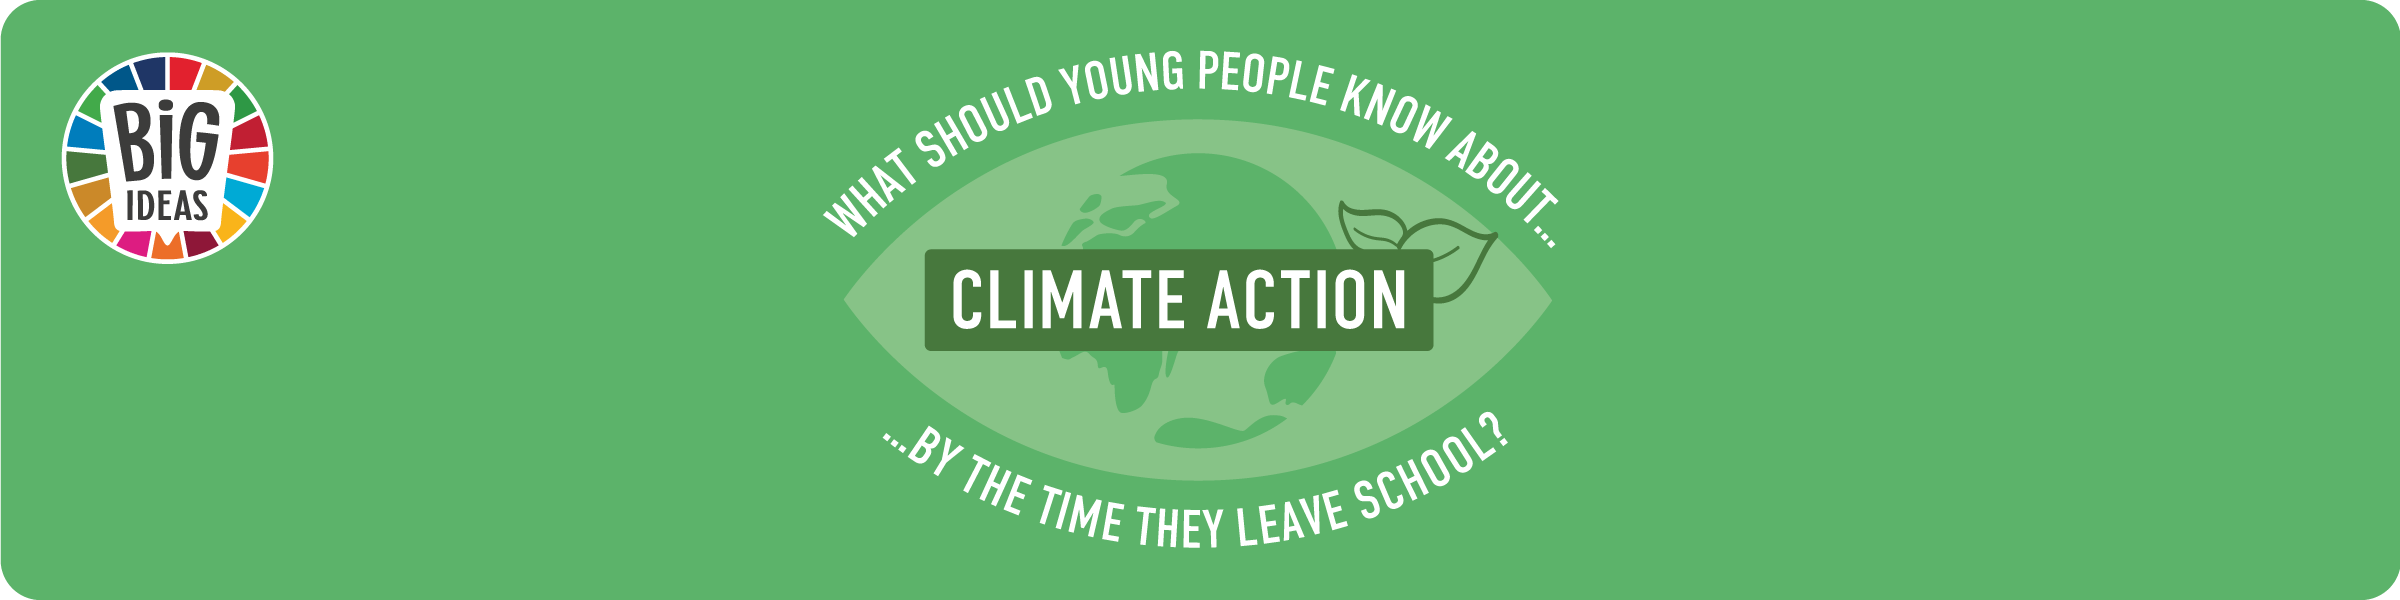 Climate Action_Header